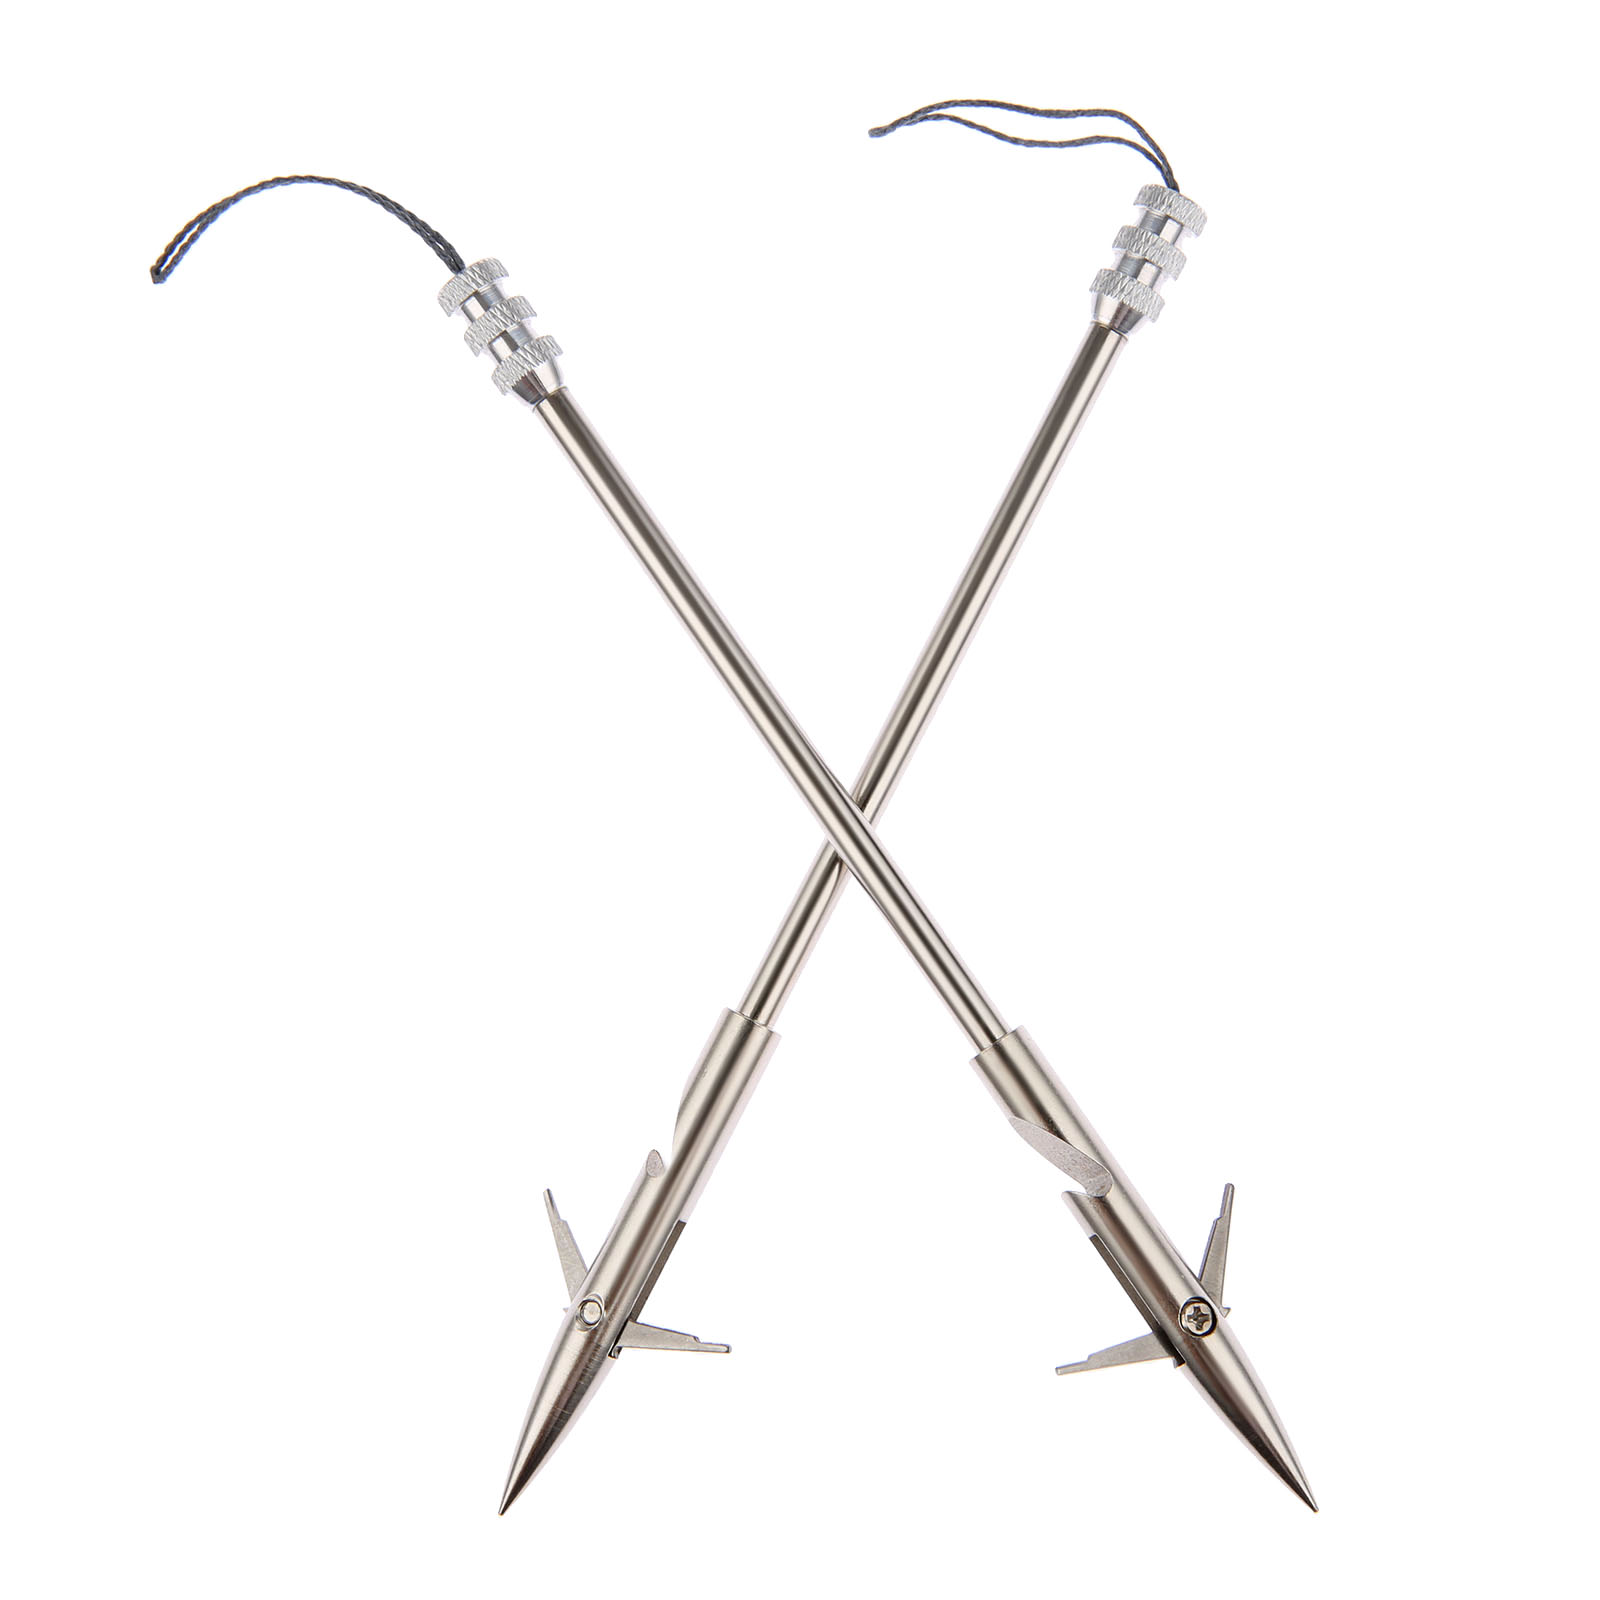 gohantee 3pcs 160mm 6 3 inch Stainless Steel Broadheads Arrowhead Bow Fishing Slingshot Arrow Hunting Shooting Catapult Dart in Bow Arrow from Sports Entertainment